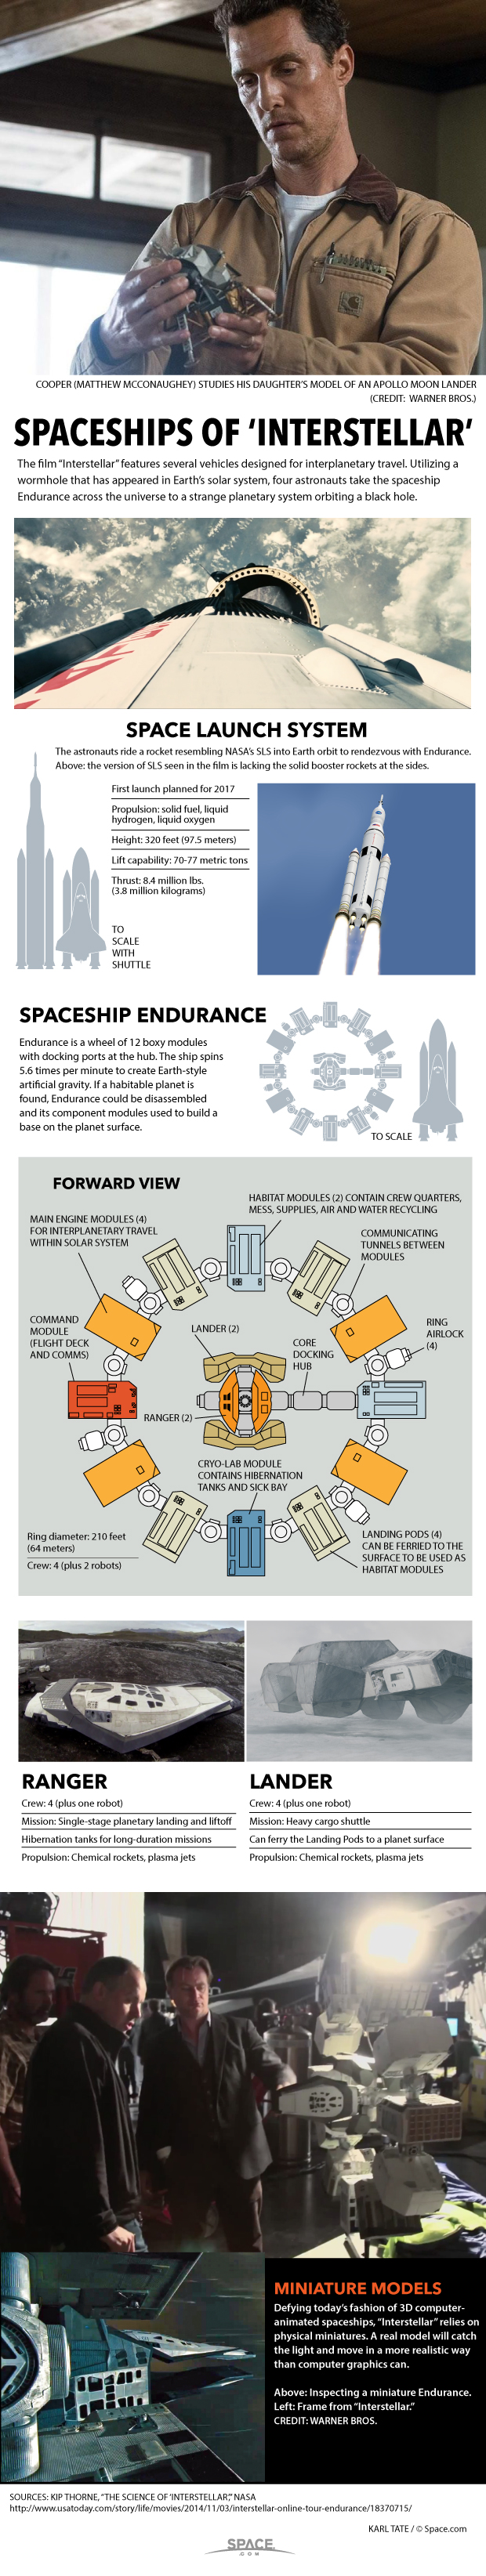 The Spaceships of 'Interstellar' Explained (Infographic)